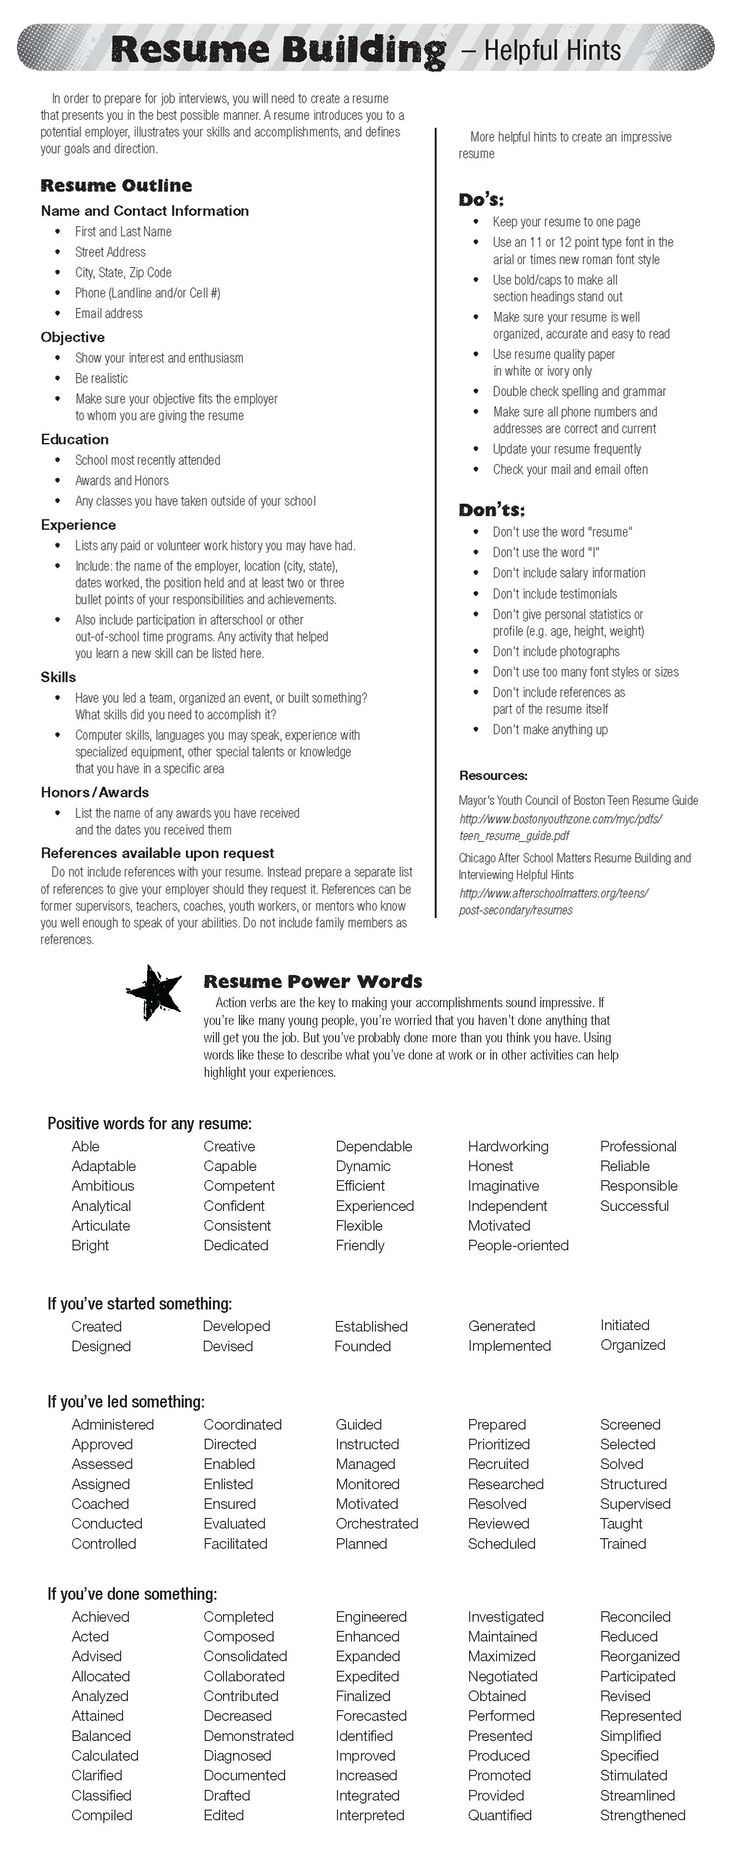 Opposenewapstandardsus  Pleasant  Ideas About Resume On Pinterest  Cv Format Resume Cv And  With Marvelous  Ideas About Resume On Pinterest  Cv Format Resume Cv And Resume Templates With Lovely Management Experience Resume Also How To Create A Cover Letter For Resume In Addition A Resume Template And Massage Therapist Resume Sample As Well As Resume Design Tips Additionally Software Engineer Sample Resume From Pinterestcom With Opposenewapstandardsus  Marvelous  Ideas About Resume On Pinterest  Cv Format Resume Cv And  With Lovely  Ideas About Resume On Pinterest  Cv Format Resume Cv And Resume Templates And Pleasant Management Experience Resume Also How To Create A Cover Letter For Resume In Addition A Resume Template From Pinterestcom